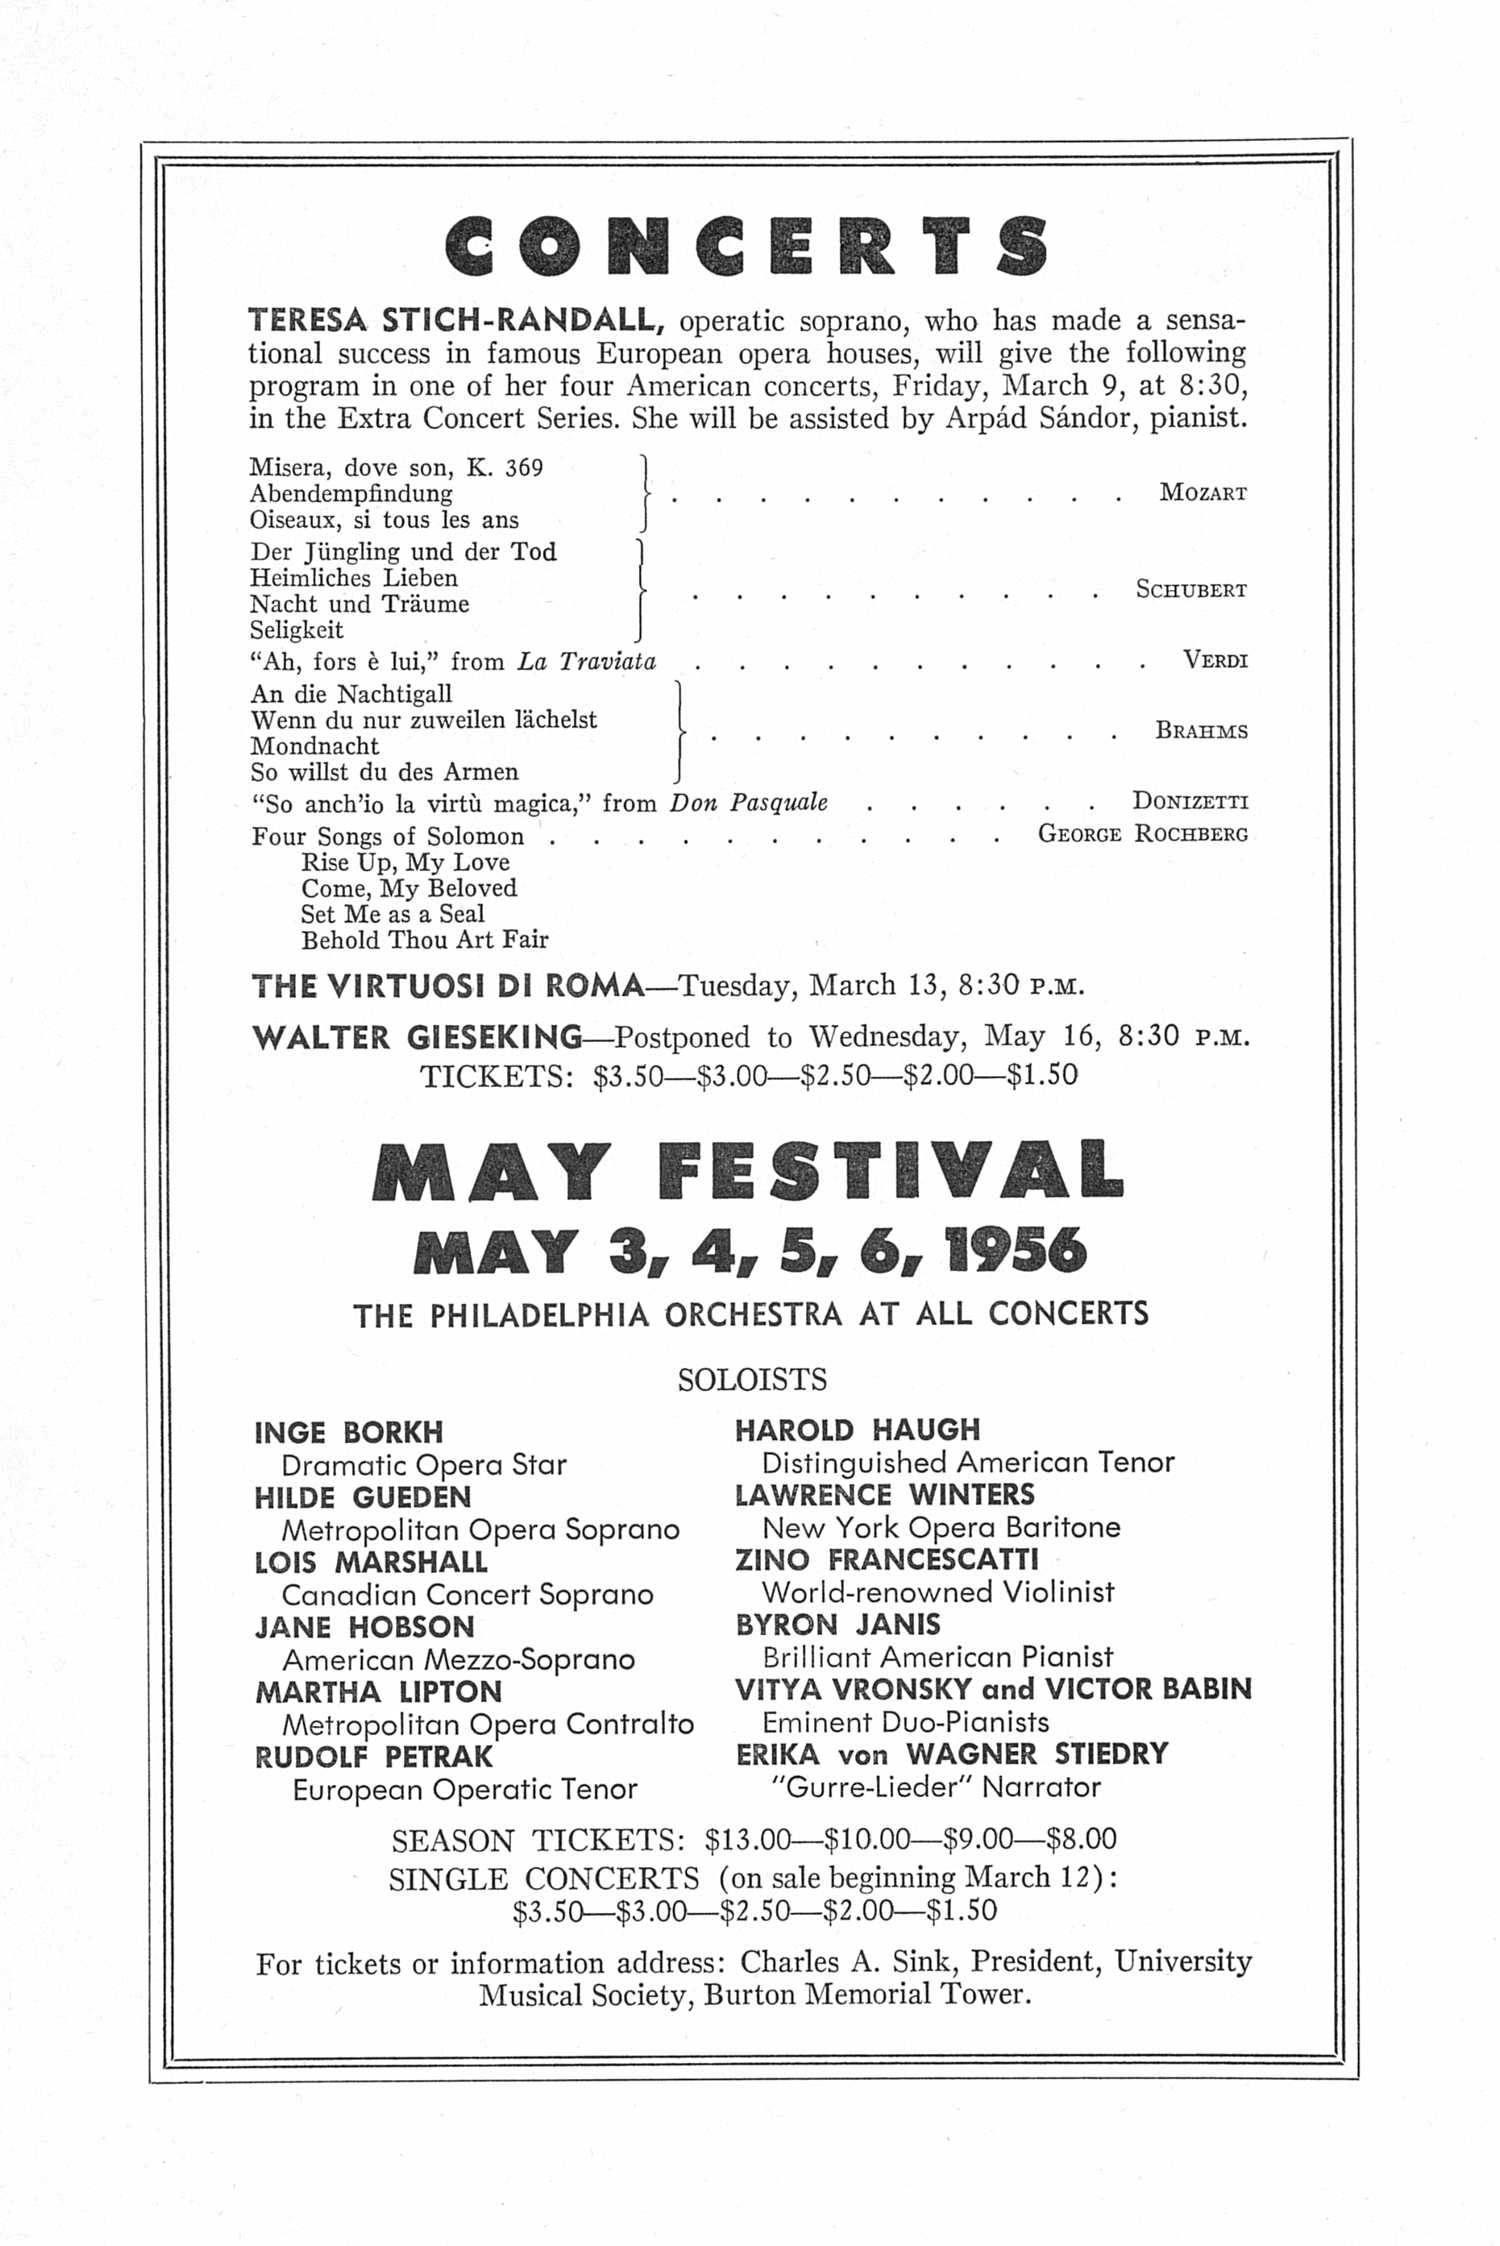 UMS Concert Program, March I, 1956: Seventy-seventh Annual Choral Union Concert Series -- Artur Rubinstein image